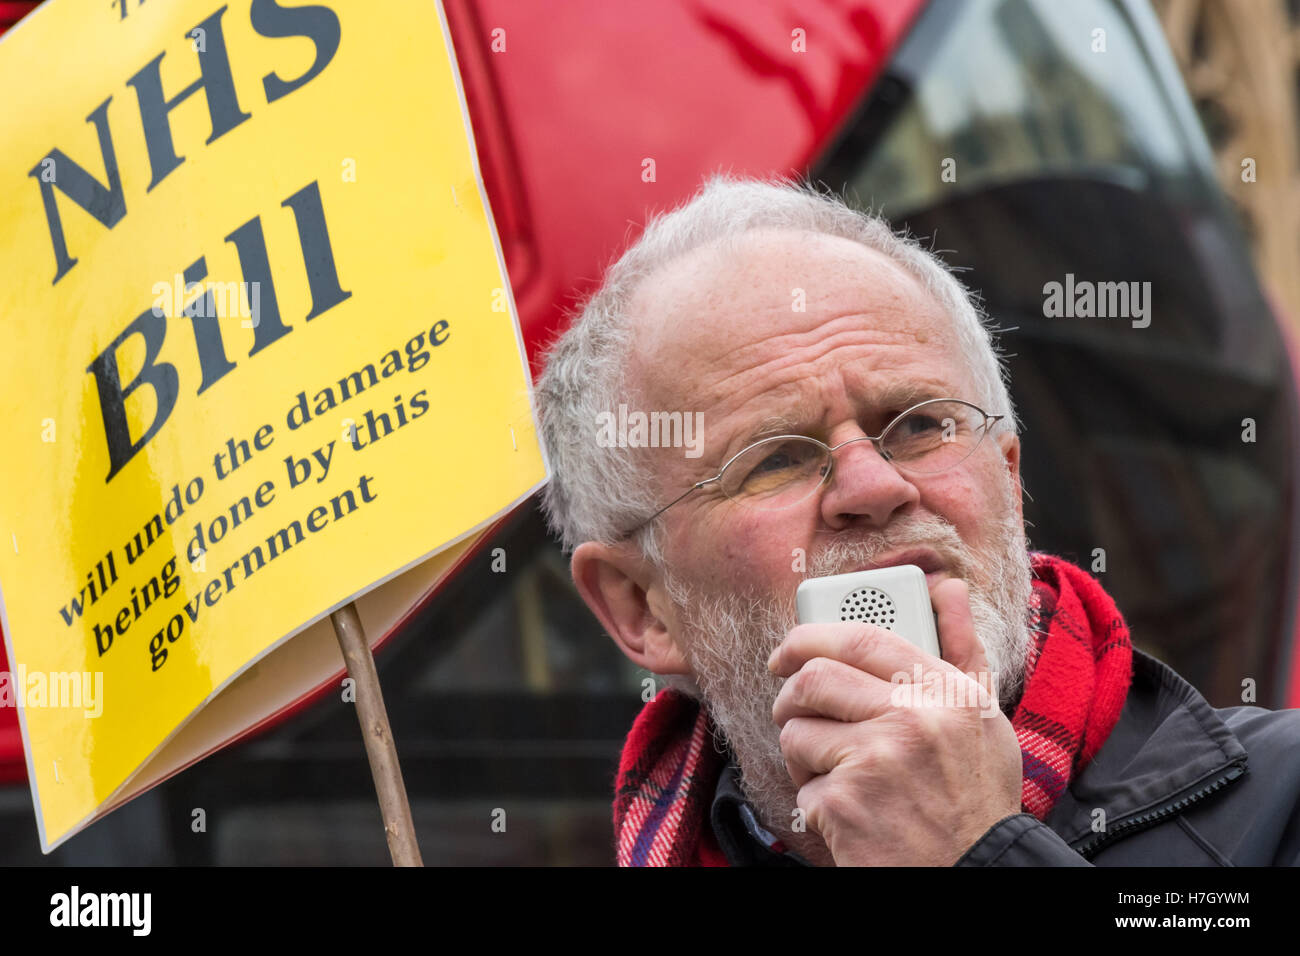 London, UK. 4 November 2016. Allyson Pollock, a BMA council member who  helped in promoting the bill speaks at the - Stock Image